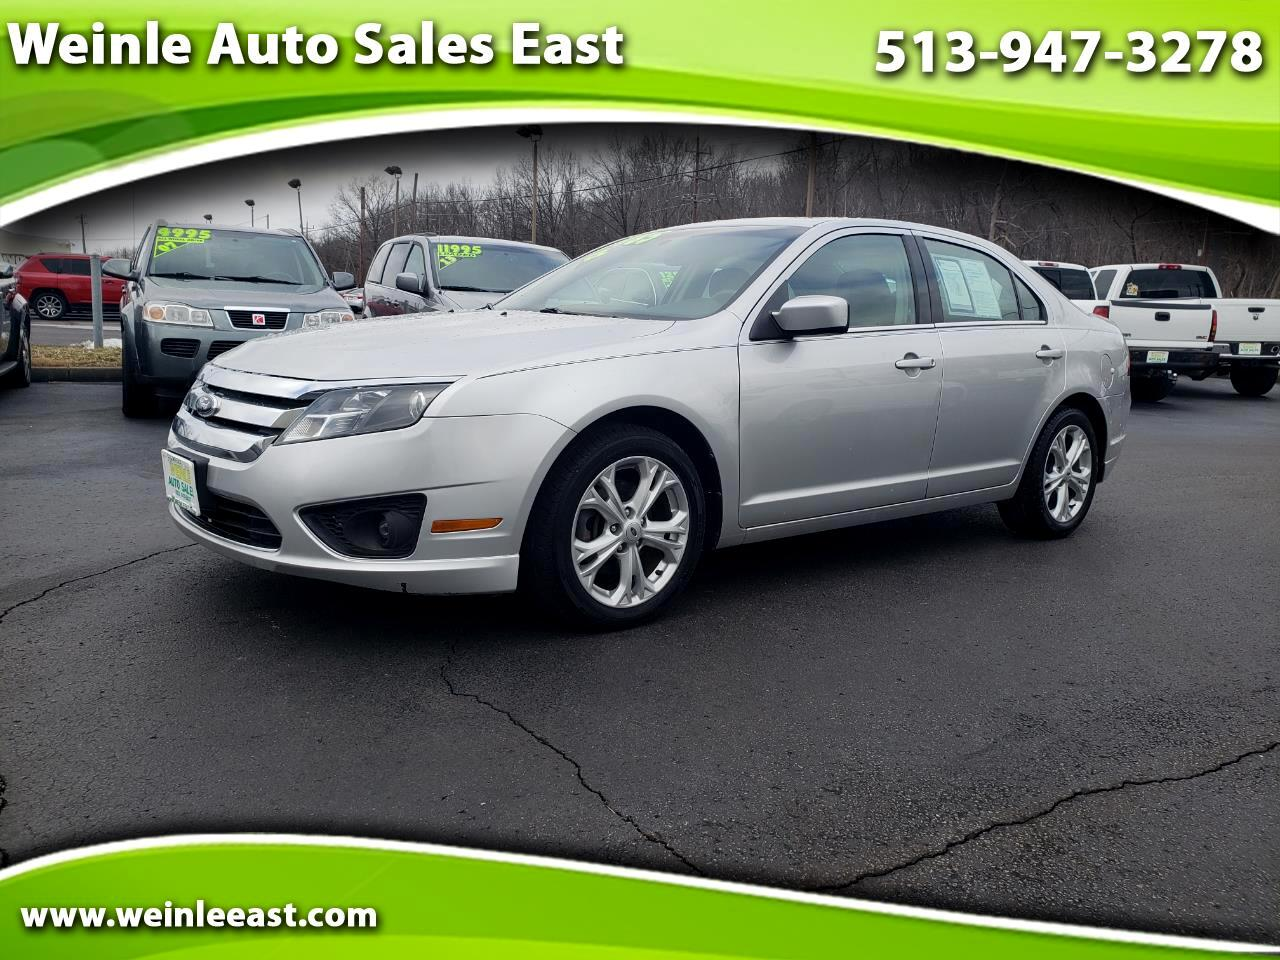 2012 Ford Fusion 4DR SE SUNROOF ALLOYS CLEAN